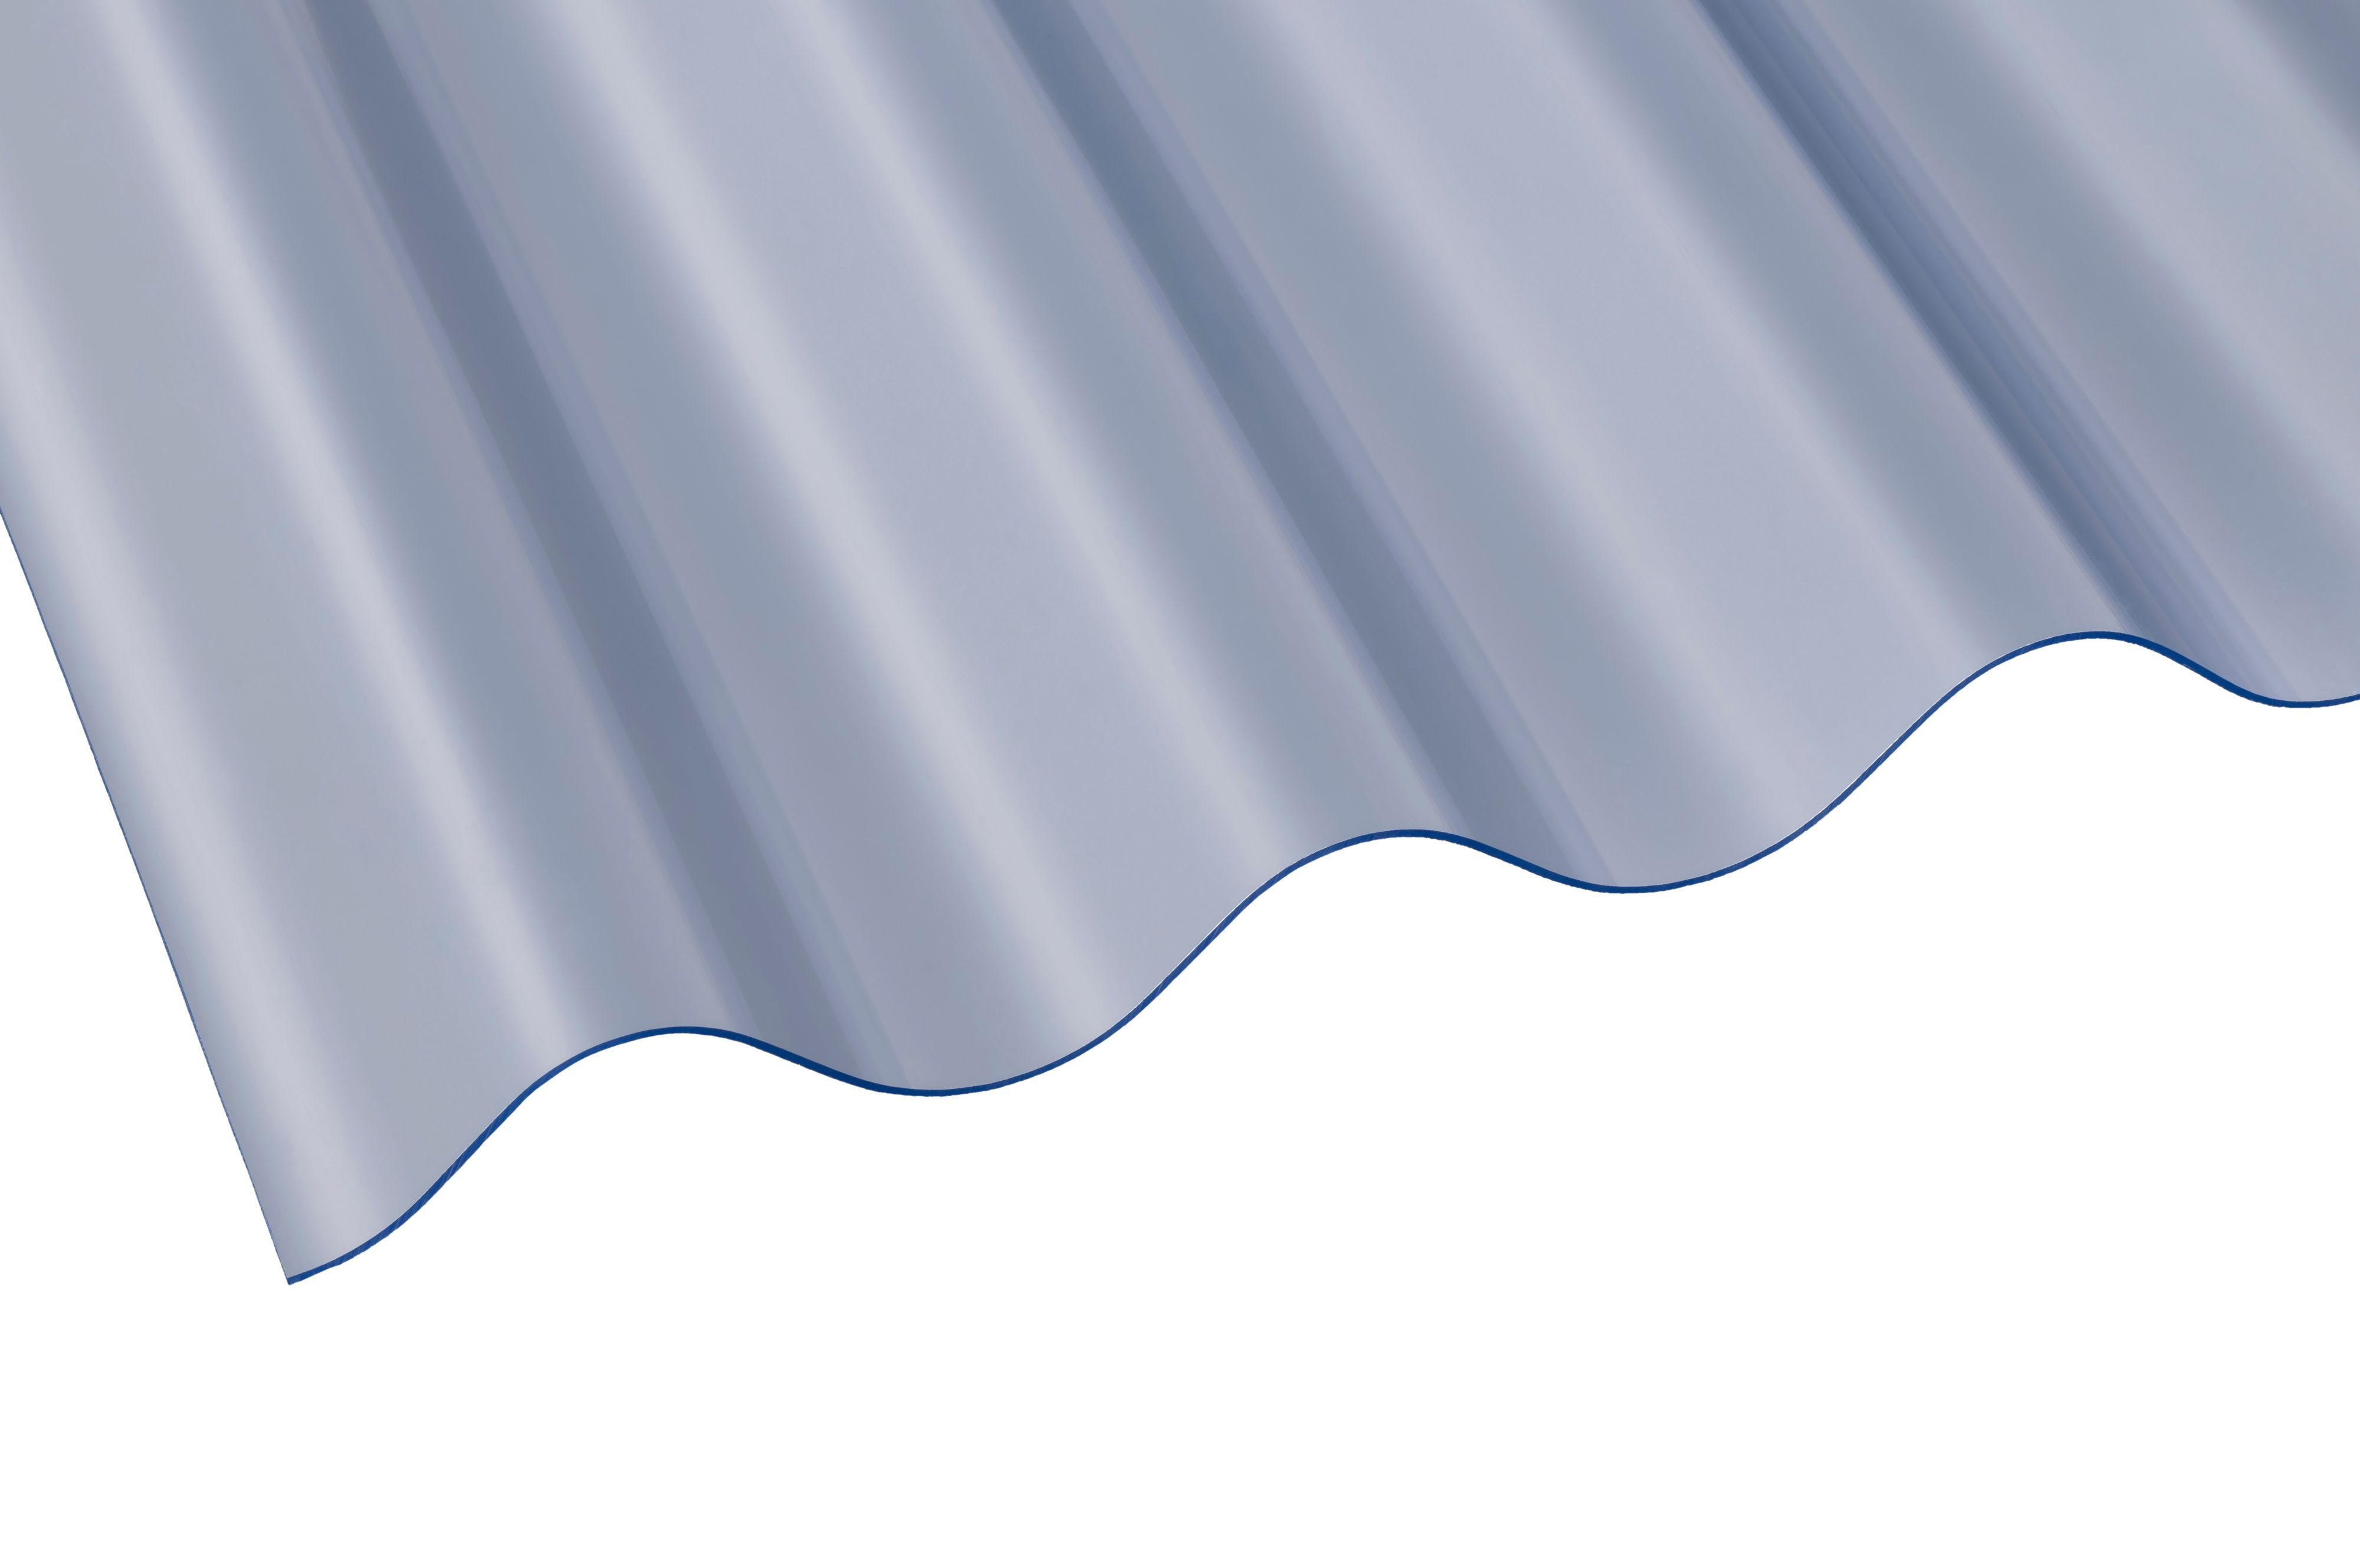 Clear Corrugated Pvc Roofing Sheet 2745mm X 762mm, Pack Of 10